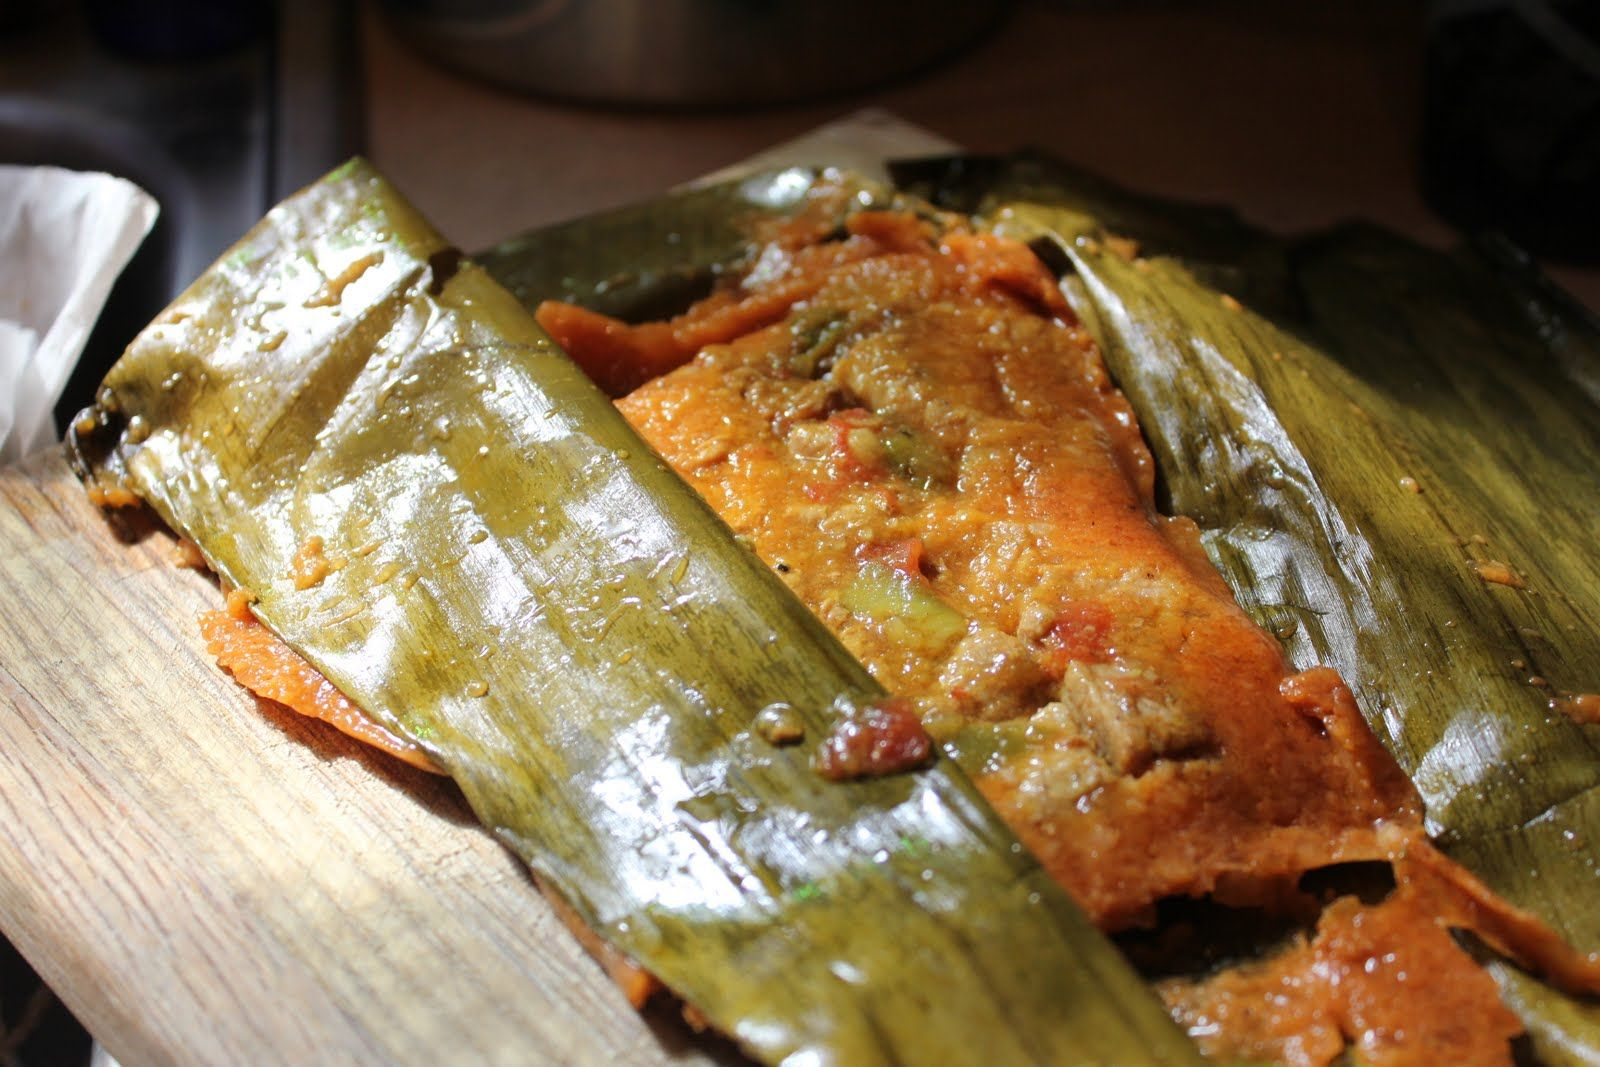 pasteles puertorriquenos recipe with photos pasteles from puerto